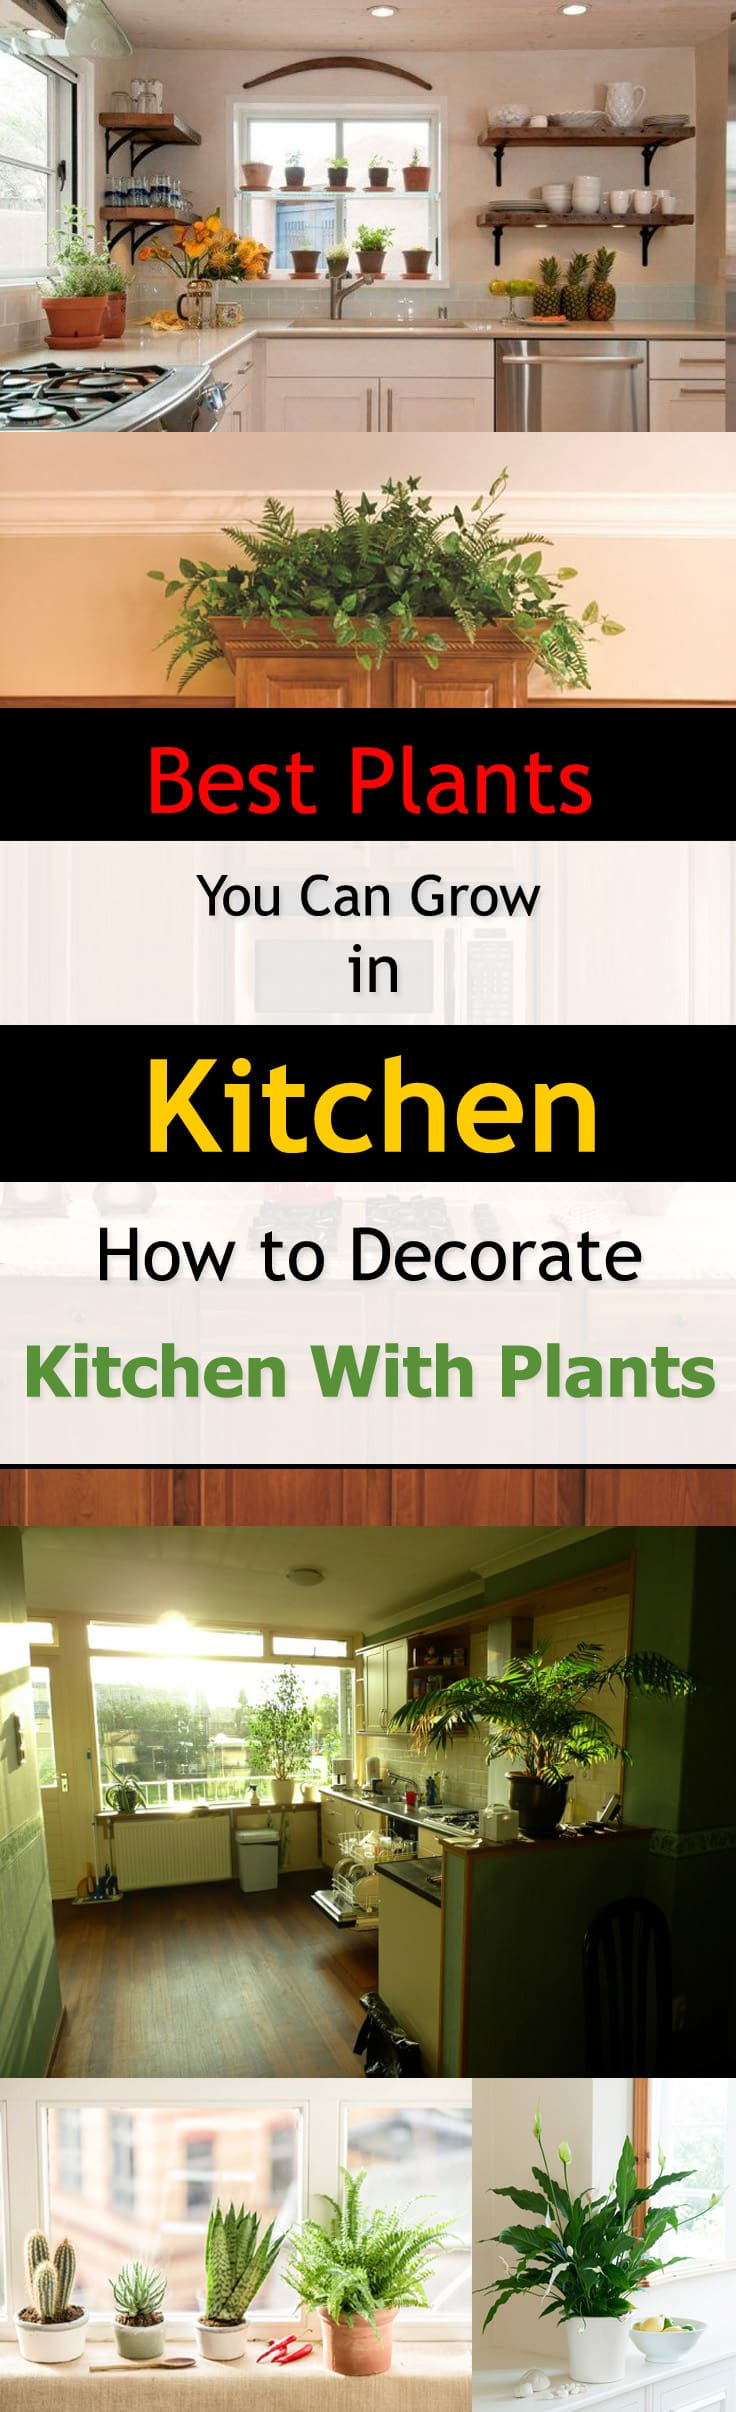 Make your kitchen look more fresh and inviting than ever before. See the best kitchen plants you can grow in your kitchen to decorate it.